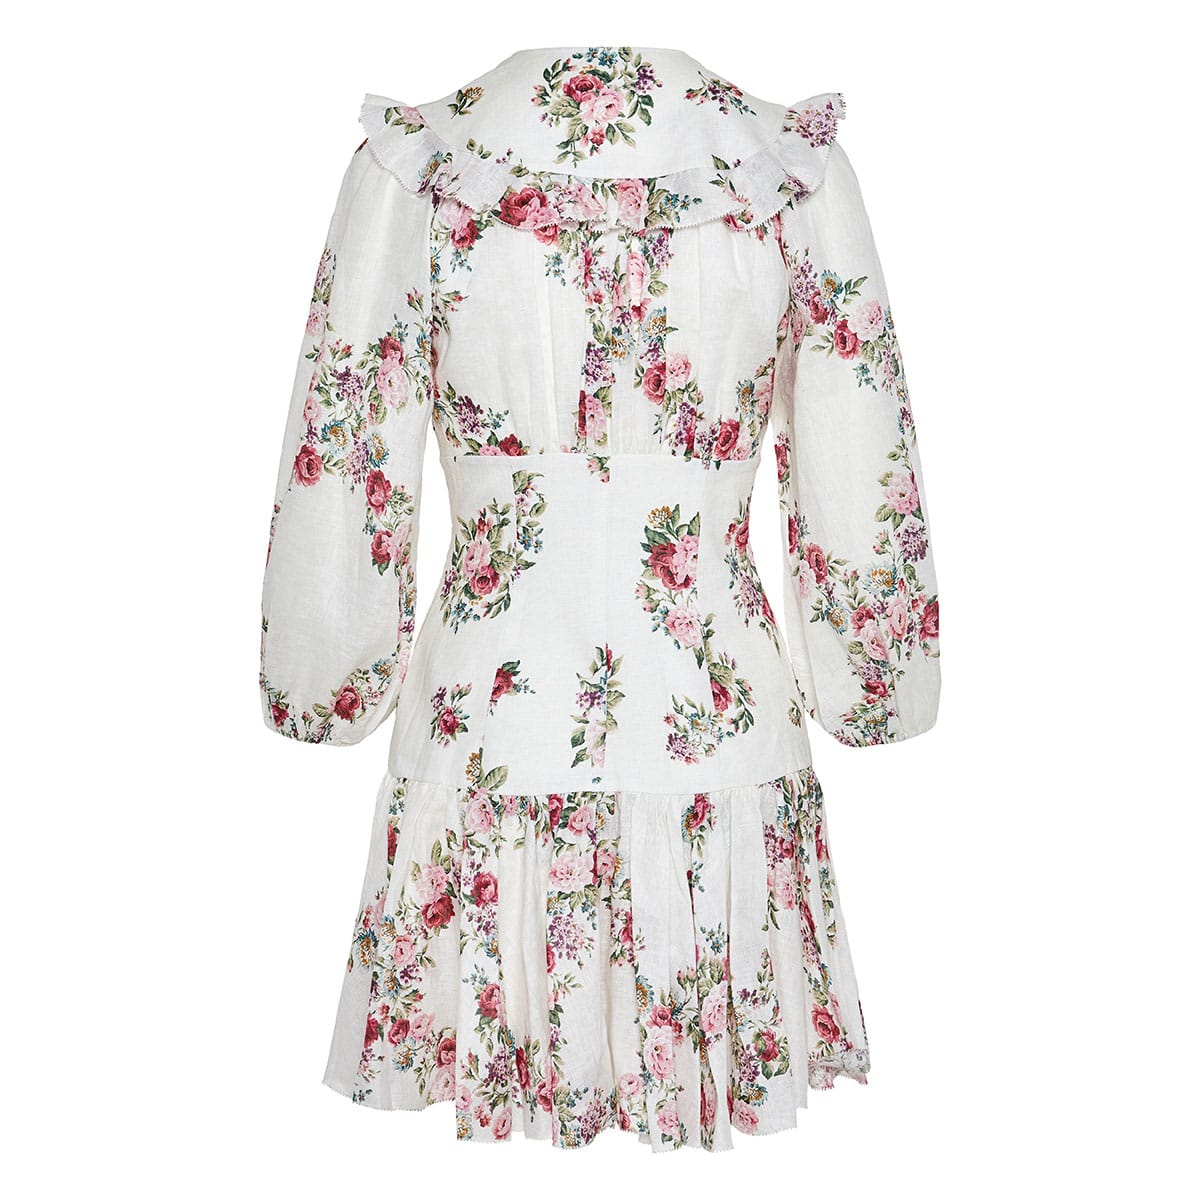 Honour floral corset mini dress